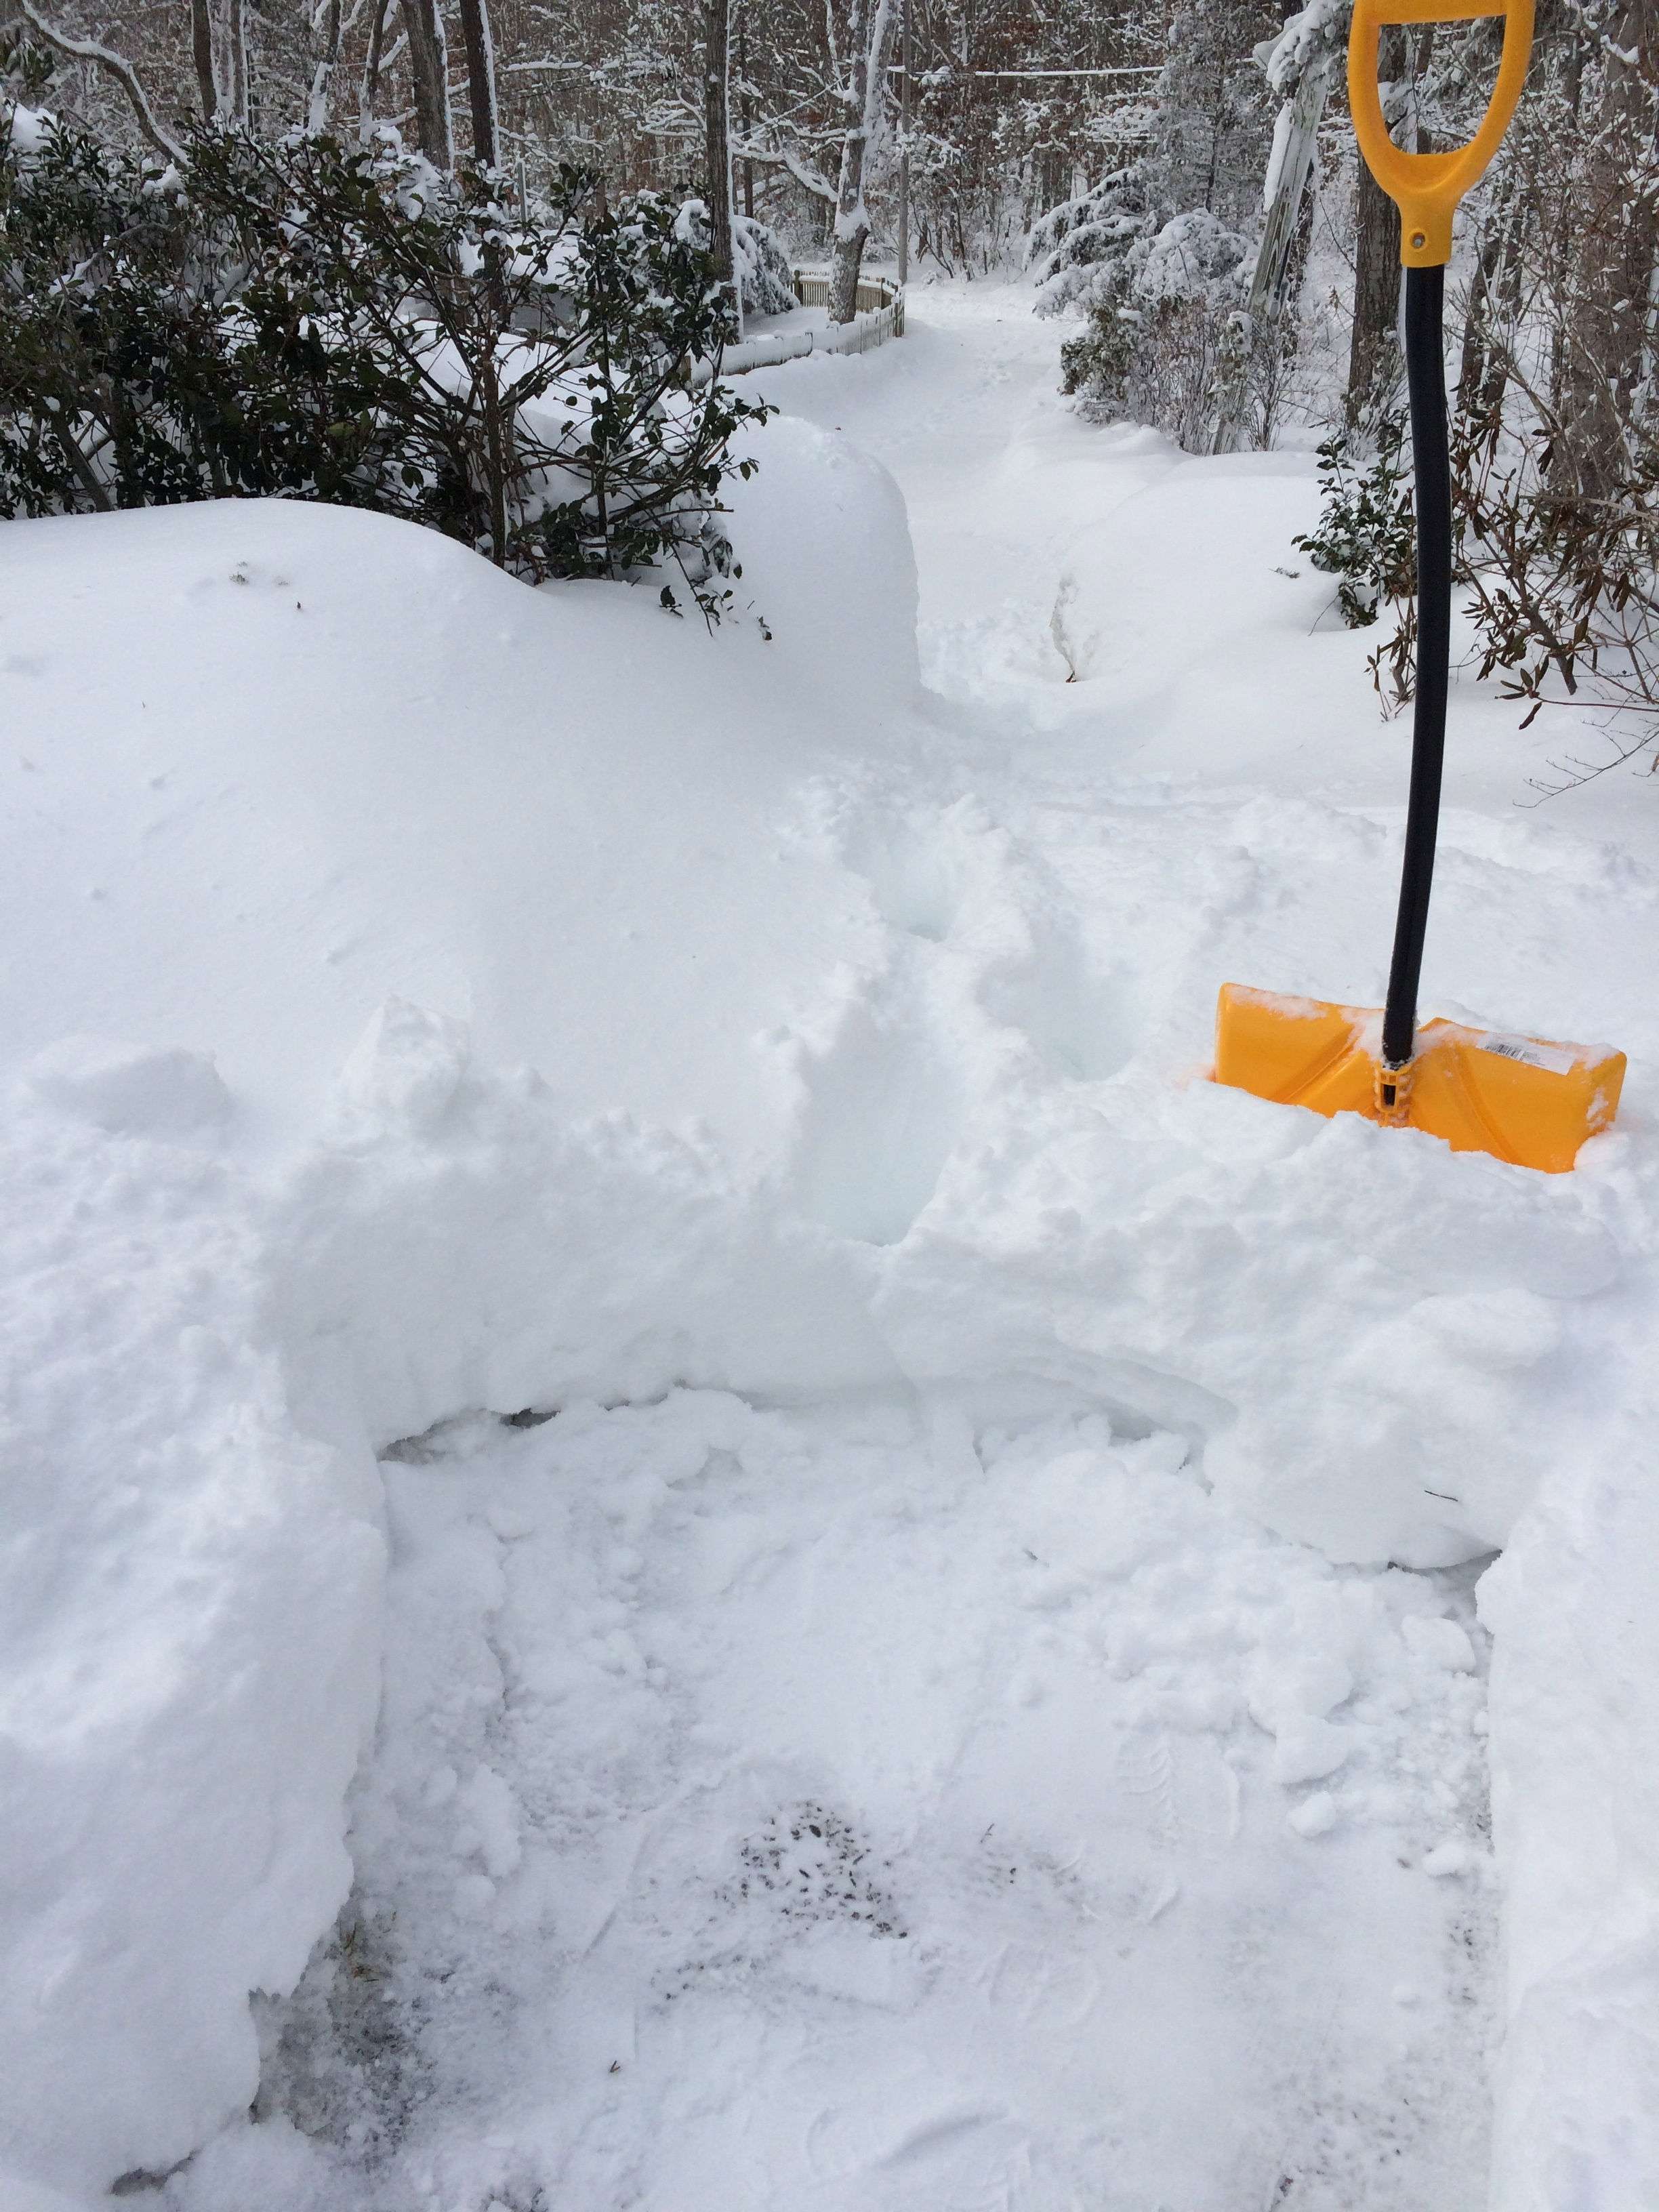 71e673c3124 The last of the snow melted from the driveway last week even though there  are still a few piles in the woods on the road, and we are finally  beginning to ...